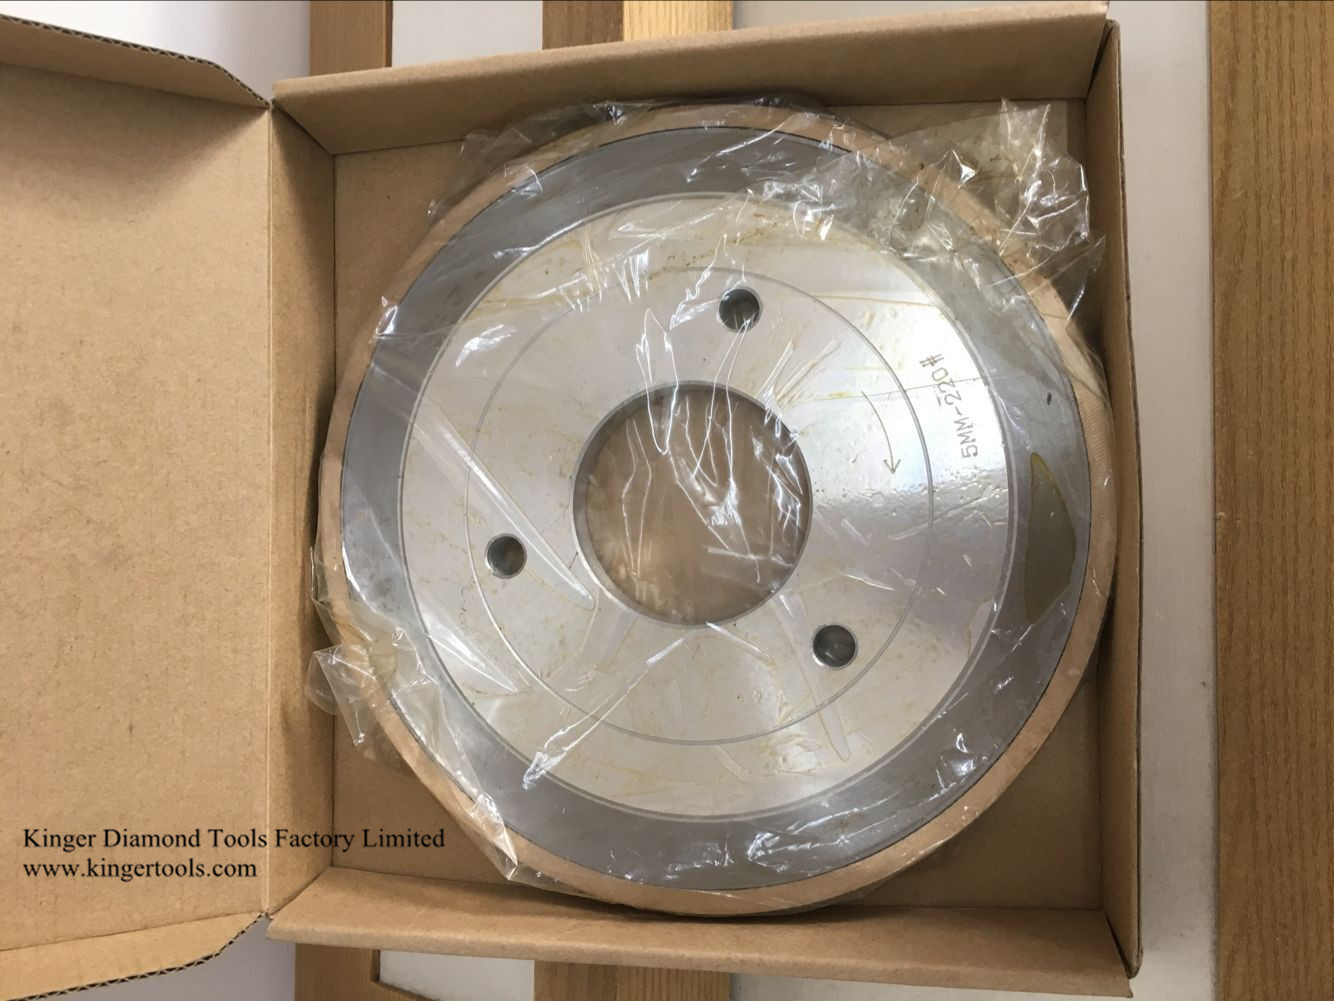 Top quality CNC diamond wheel